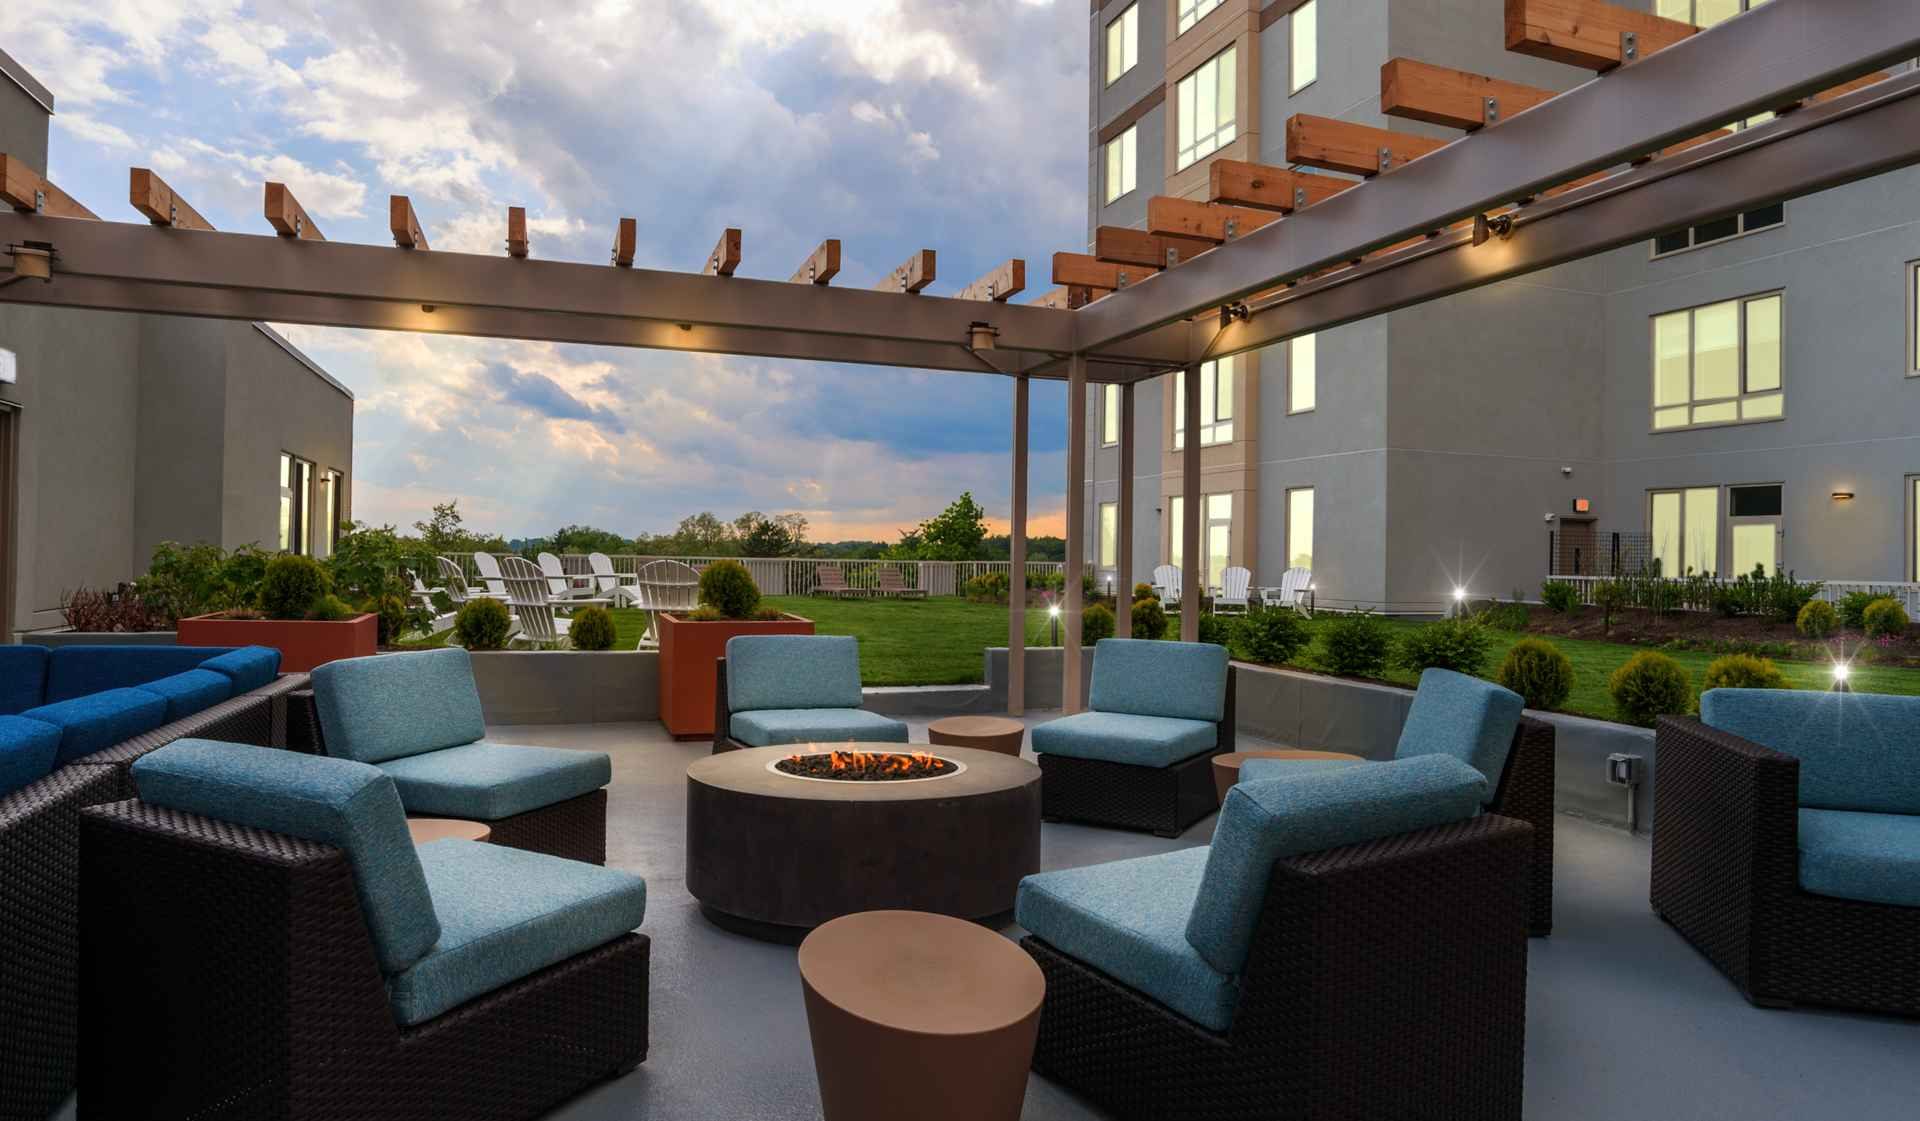 One Ardmore Apartment Homes - Ardmore, PA - Apartments and Outdoor Patio Area